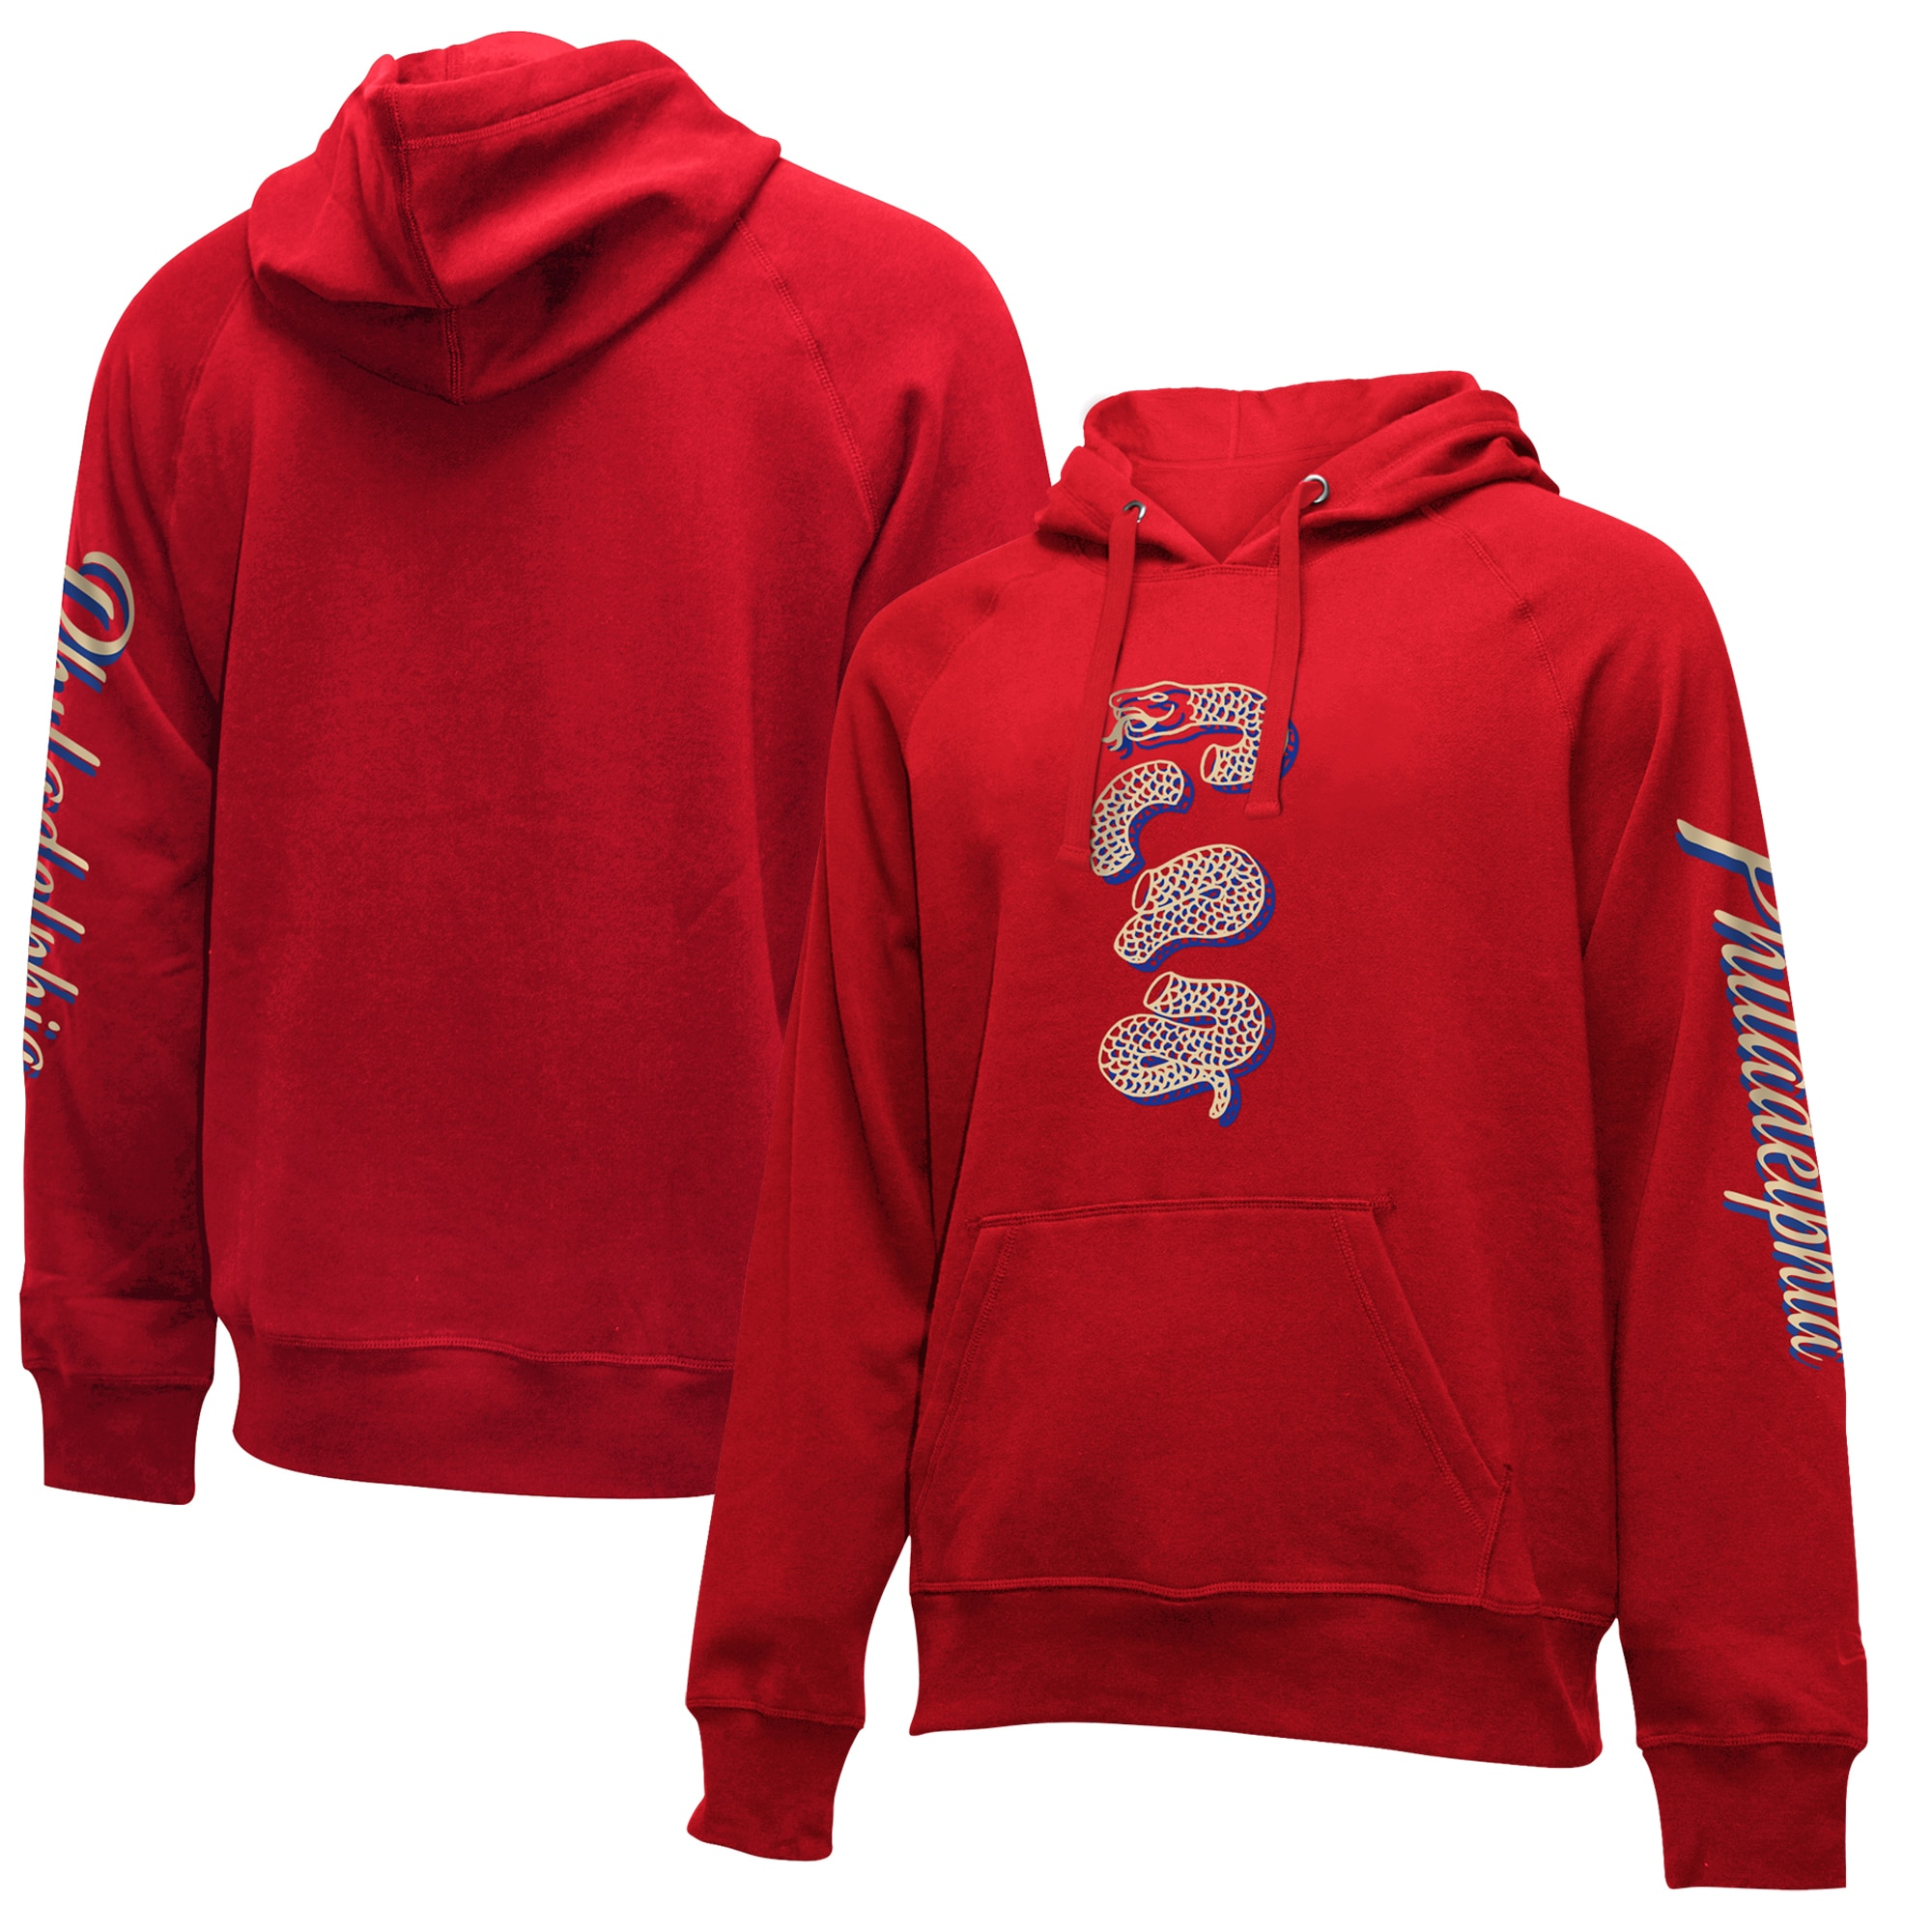 Philadelphia 76ers New Era 2019/20 City Edition Pullover Hoodie - Red